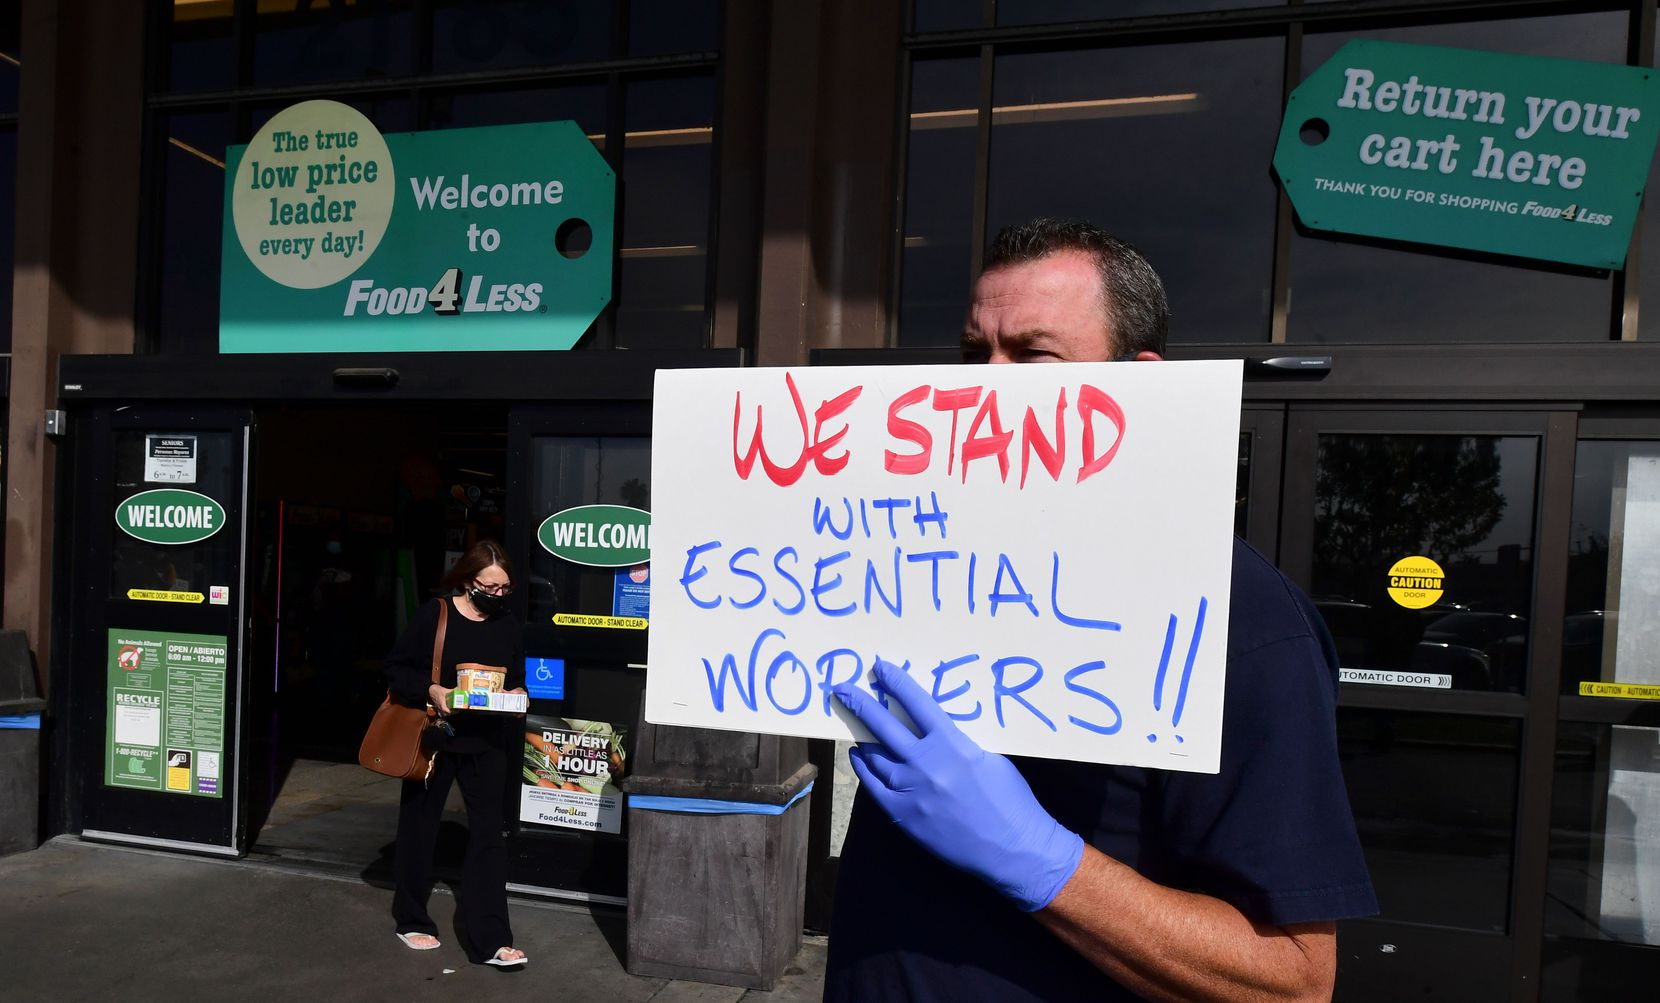 "Supermarket workers held placards in protest in front of a Food 4 Less supermarket in Long Beach, Calif., last week after a decision by owner Kroger to close two supermarkets rather than pay workers an additional $4 an hour in ""hazard pay"" for their continued work during the coronavirus pandemic."